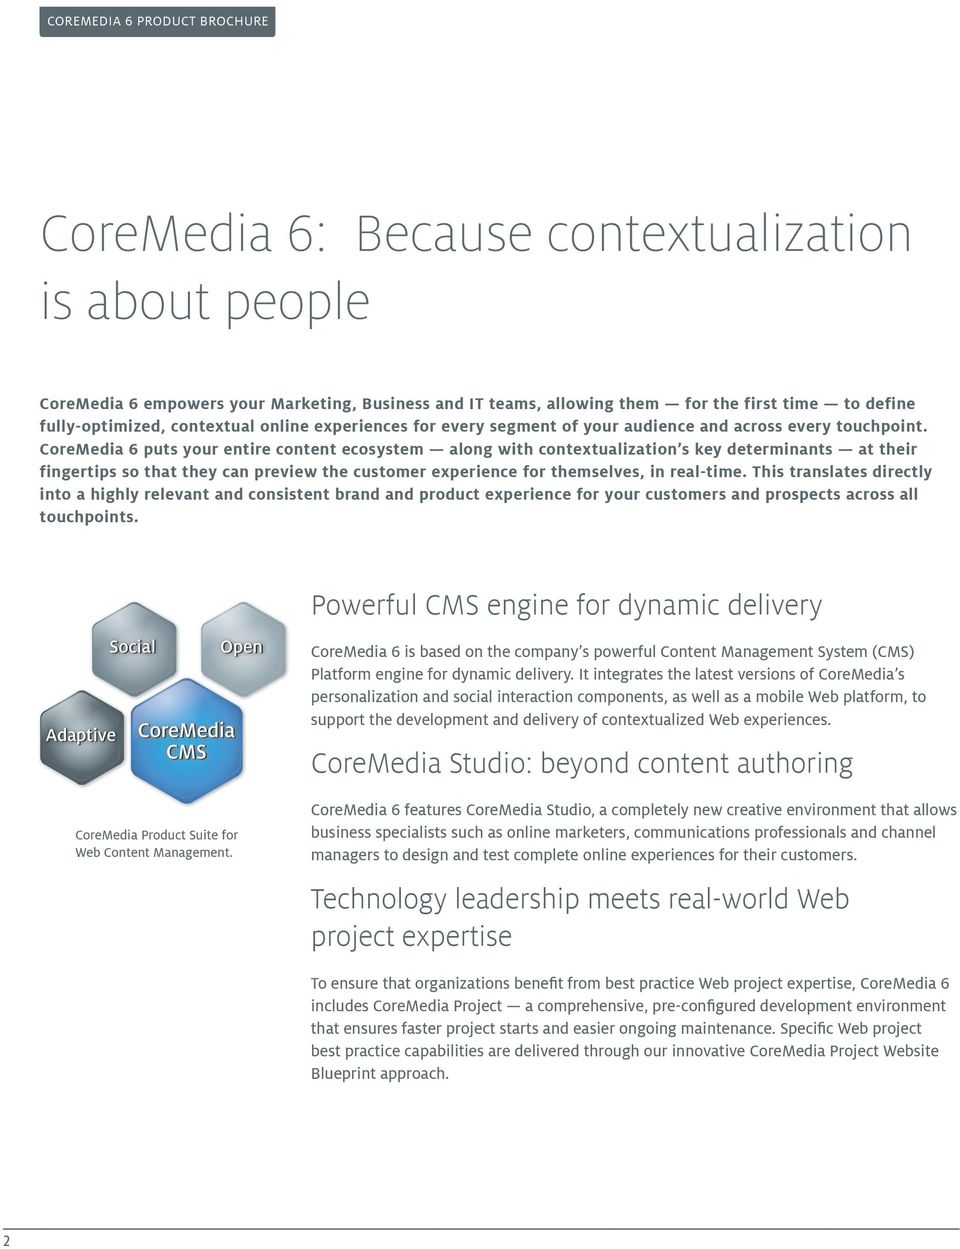 CoreMedia 6 puts your entire content ecosystem along with contextualization s key determinants at their fingertips so that they can preview the customer experience for themselves, in real-time.